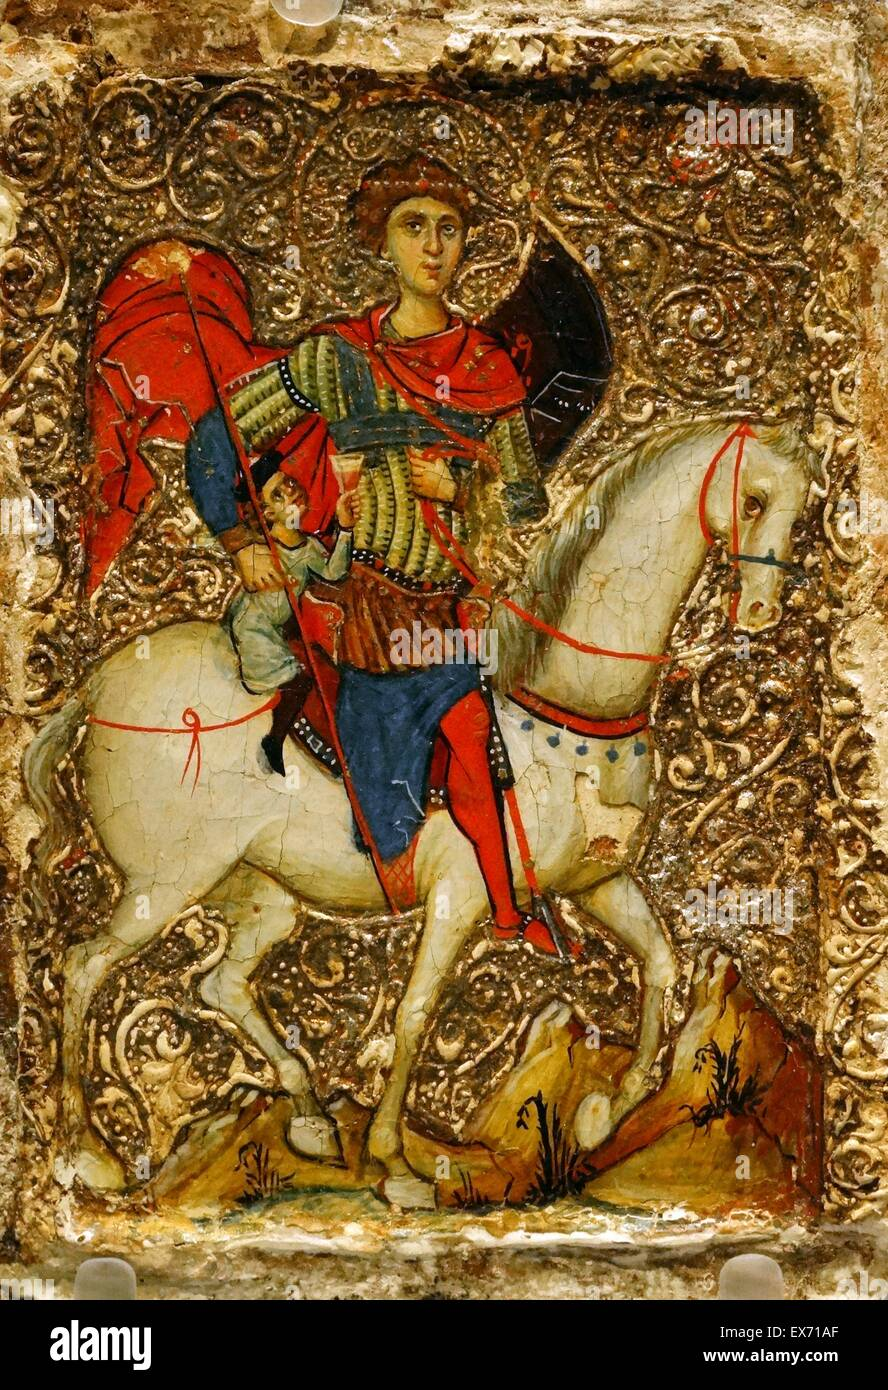 Icon showing St George and the youth of Mytilene. legend about a Christian youth enslaved by Muslims on the island - Stock Image